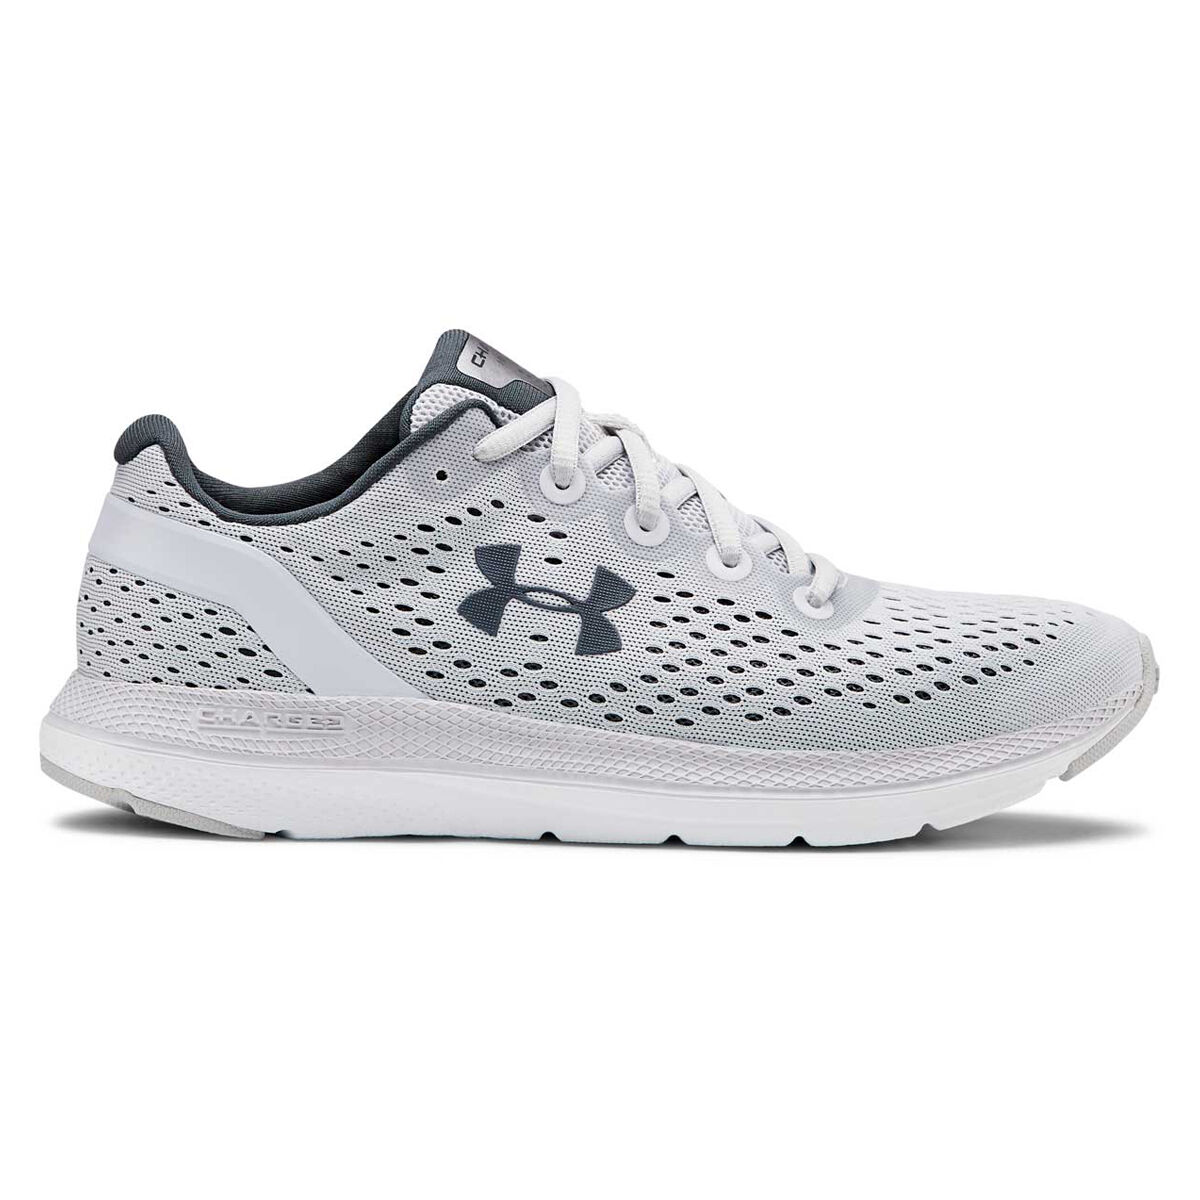 Under Armour Charged Impulse Womens